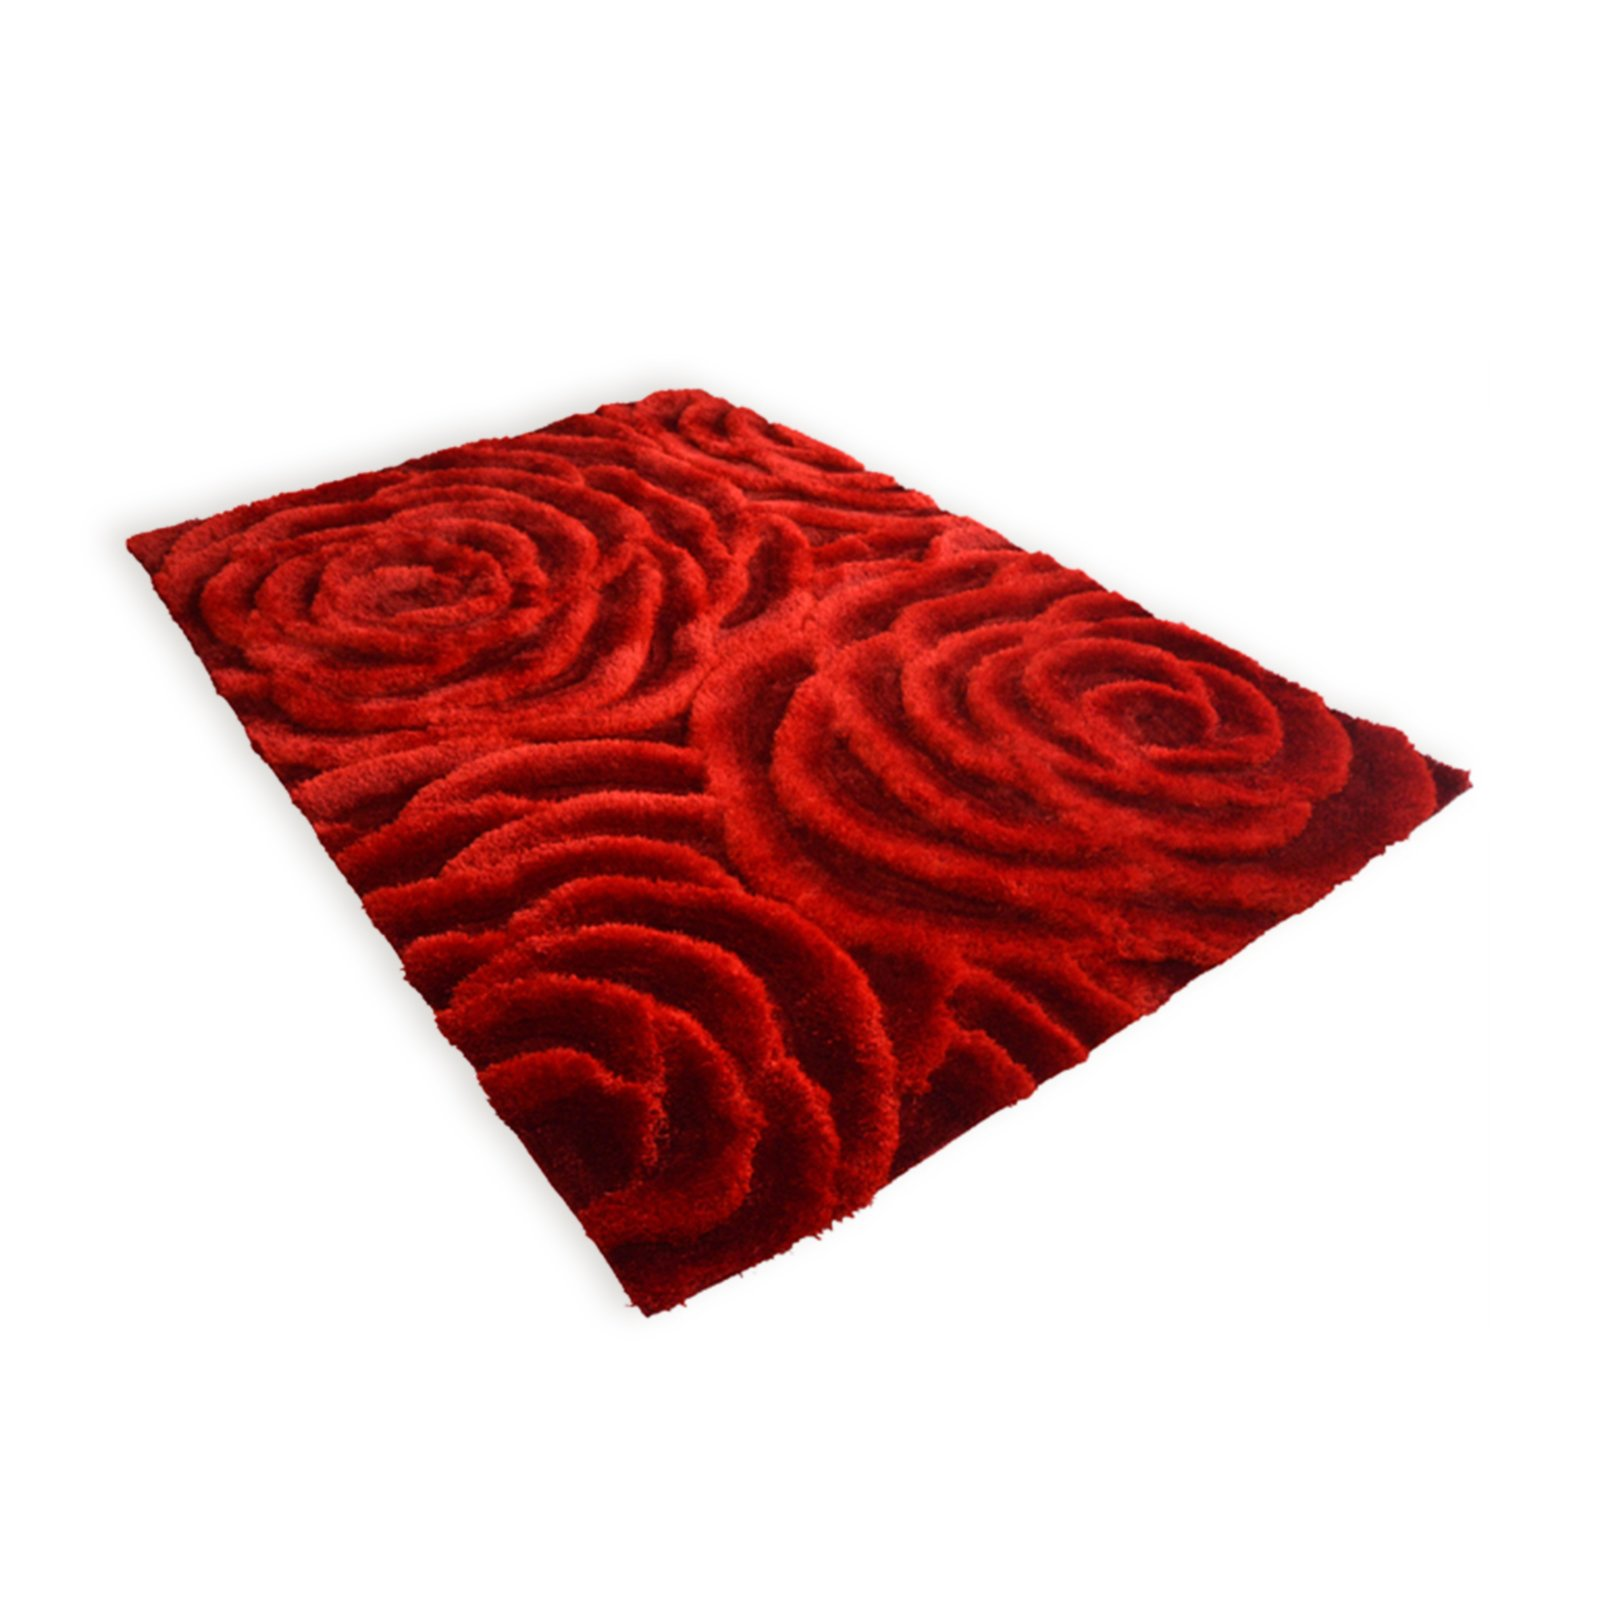 roller hochflor teppich rosen peony rot 160x230 cm ebay. Black Bedroom Furniture Sets. Home Design Ideas